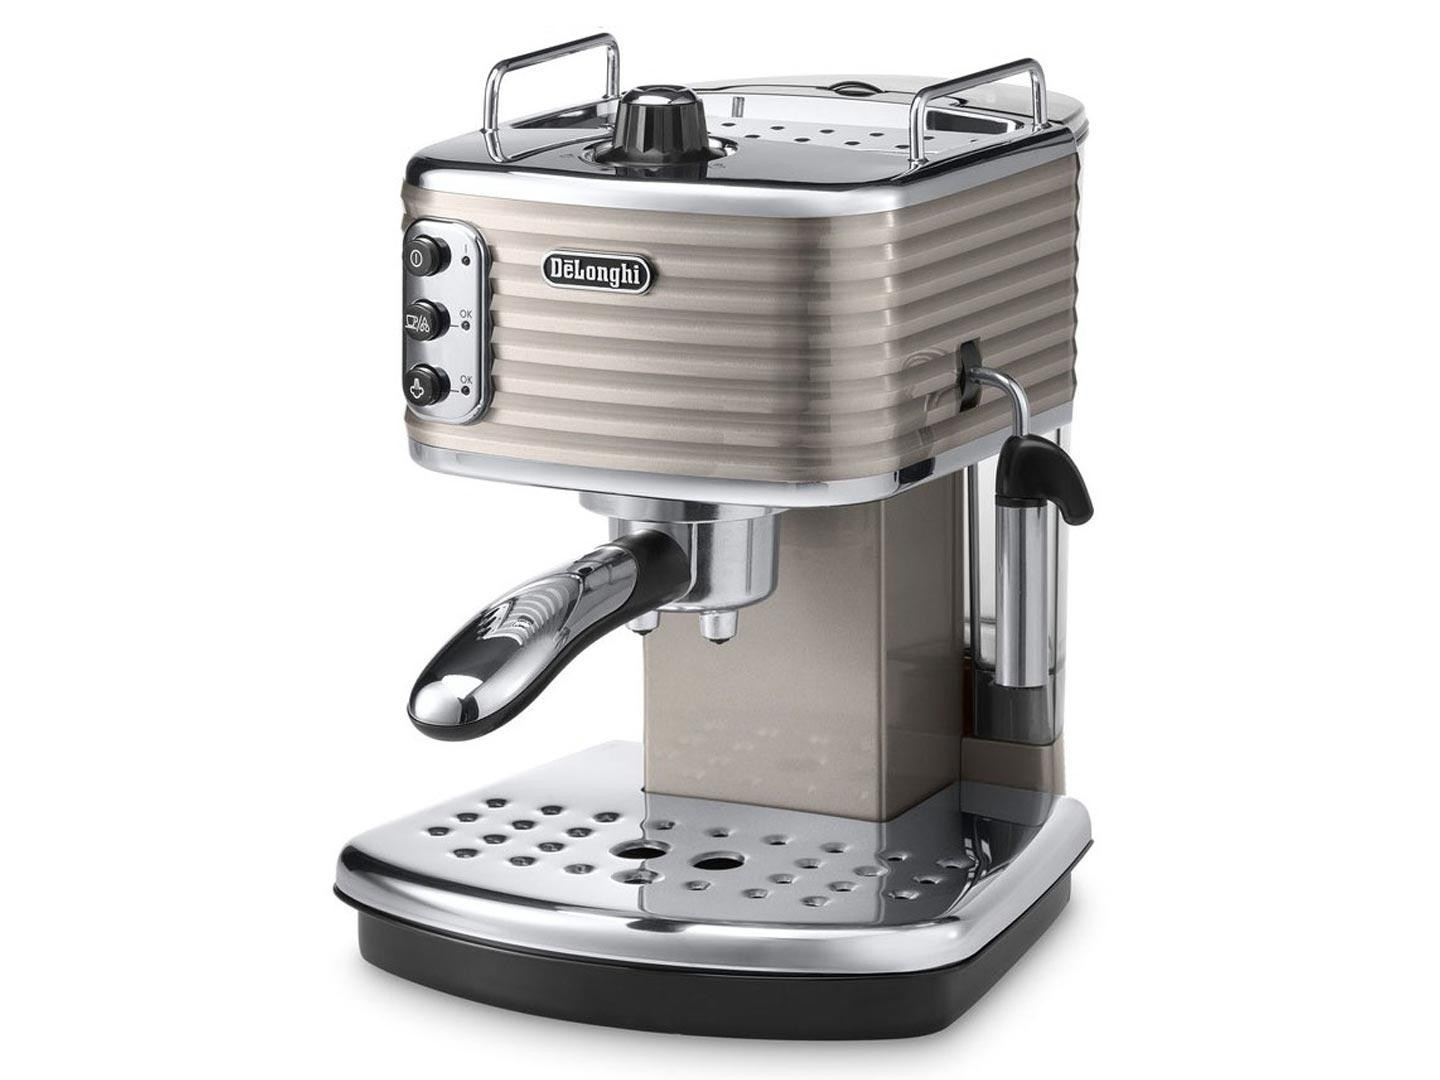 Delonghi%20Scultura%20ECZ351%20BG%20Coffee%20Machine.jpg